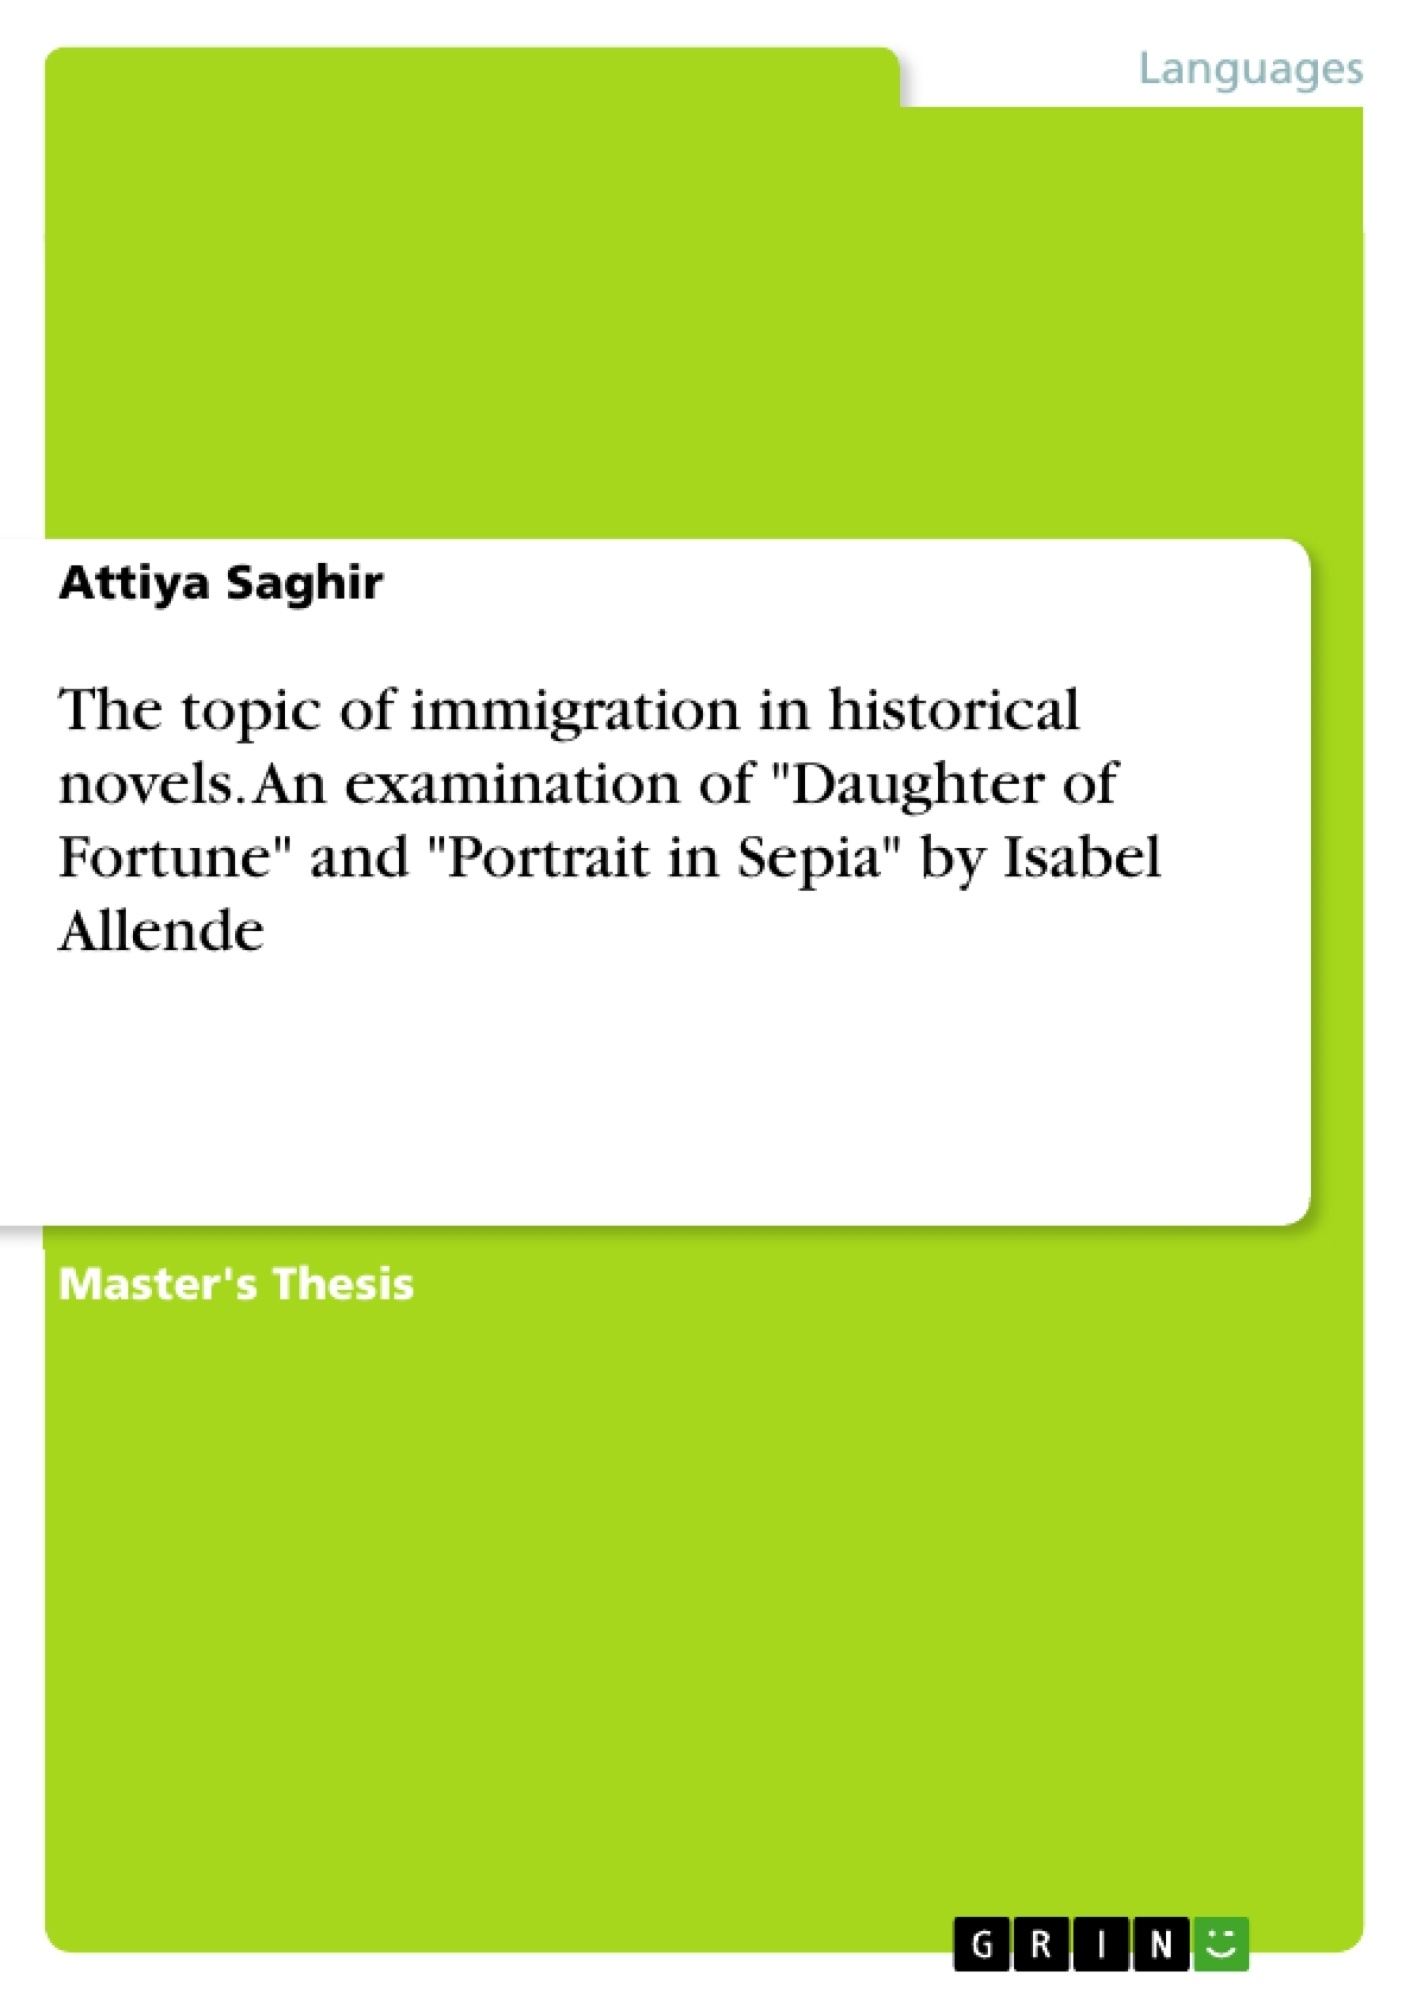 """thesis essay on novels Twelve important academic essays on crime fiction  """"the origin of the detective novel  alewyn puts forward the provocative thesis that the."""